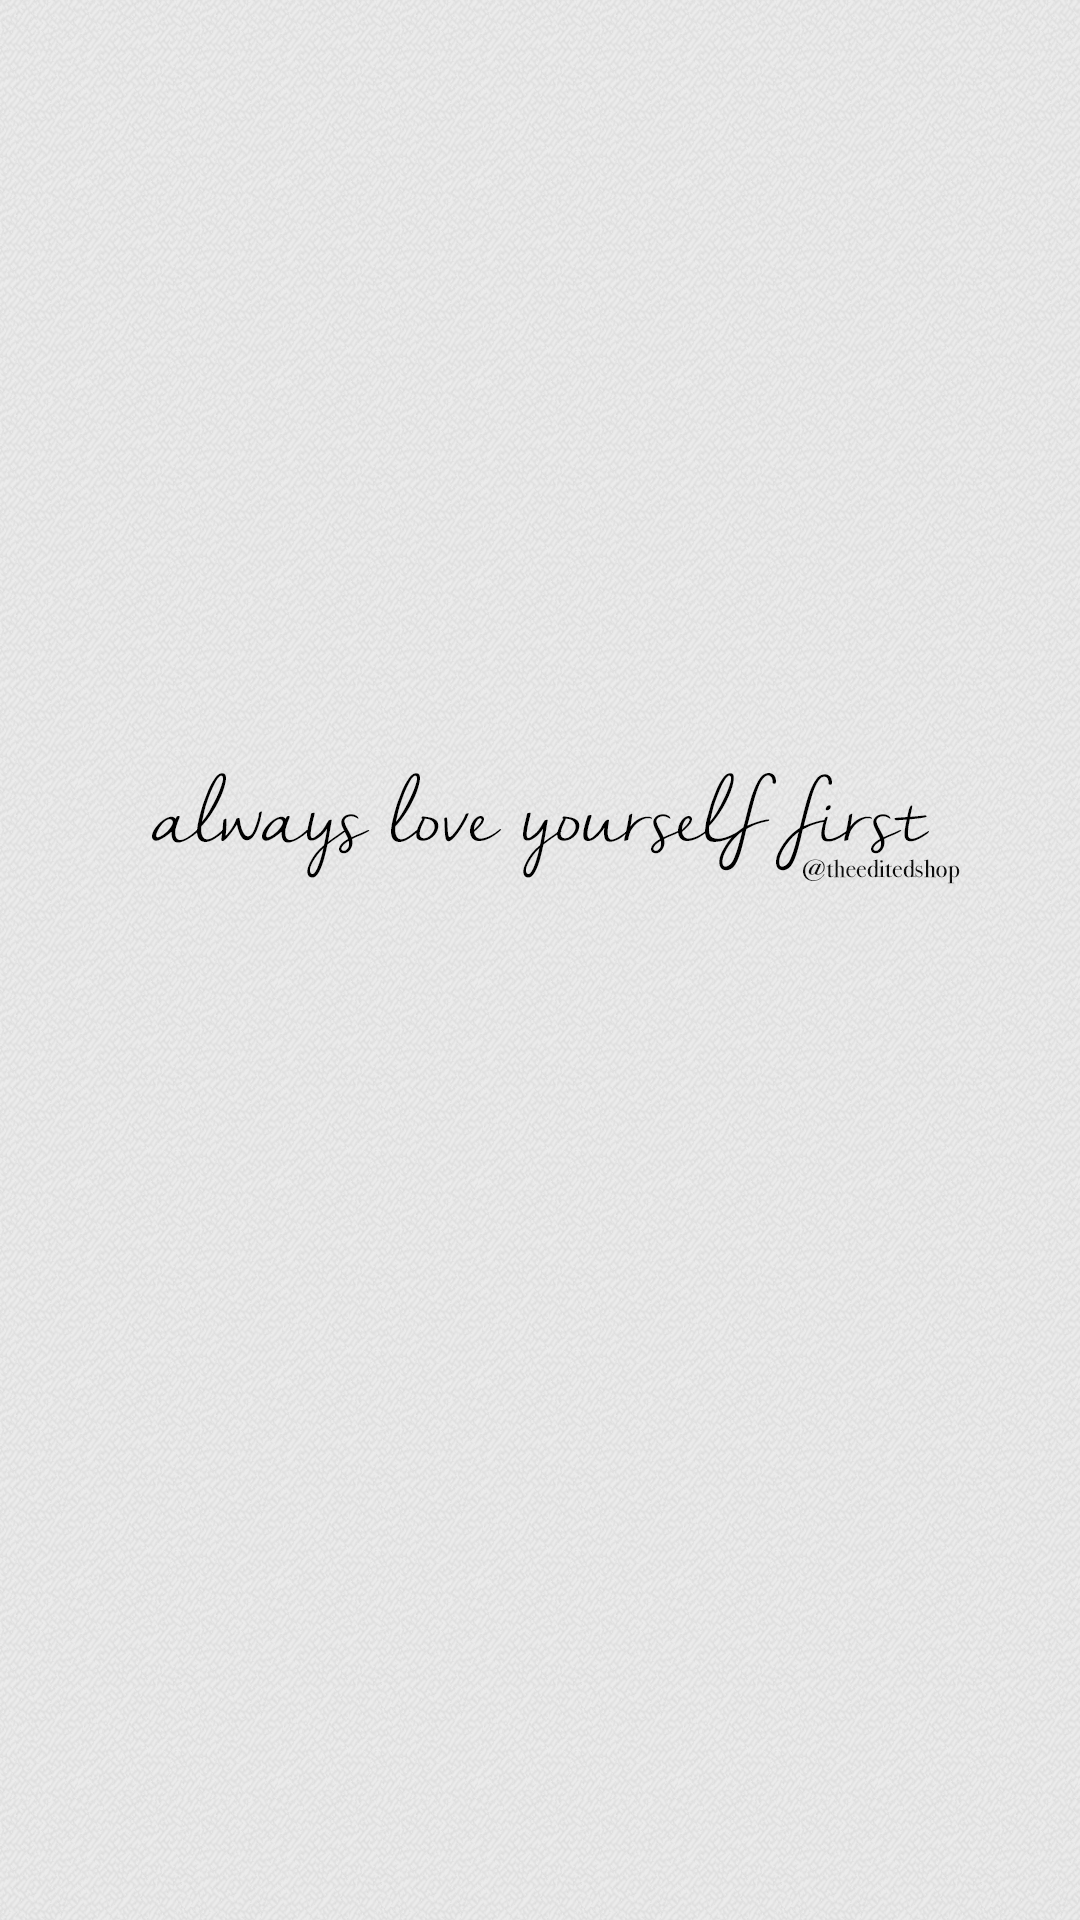 Love Yourself Quotes For Instagram : yourself, quotes, instagram, Self-love, Instagram, Quote:, Always, Yourself, First, EDITED, Quotes,, Love,